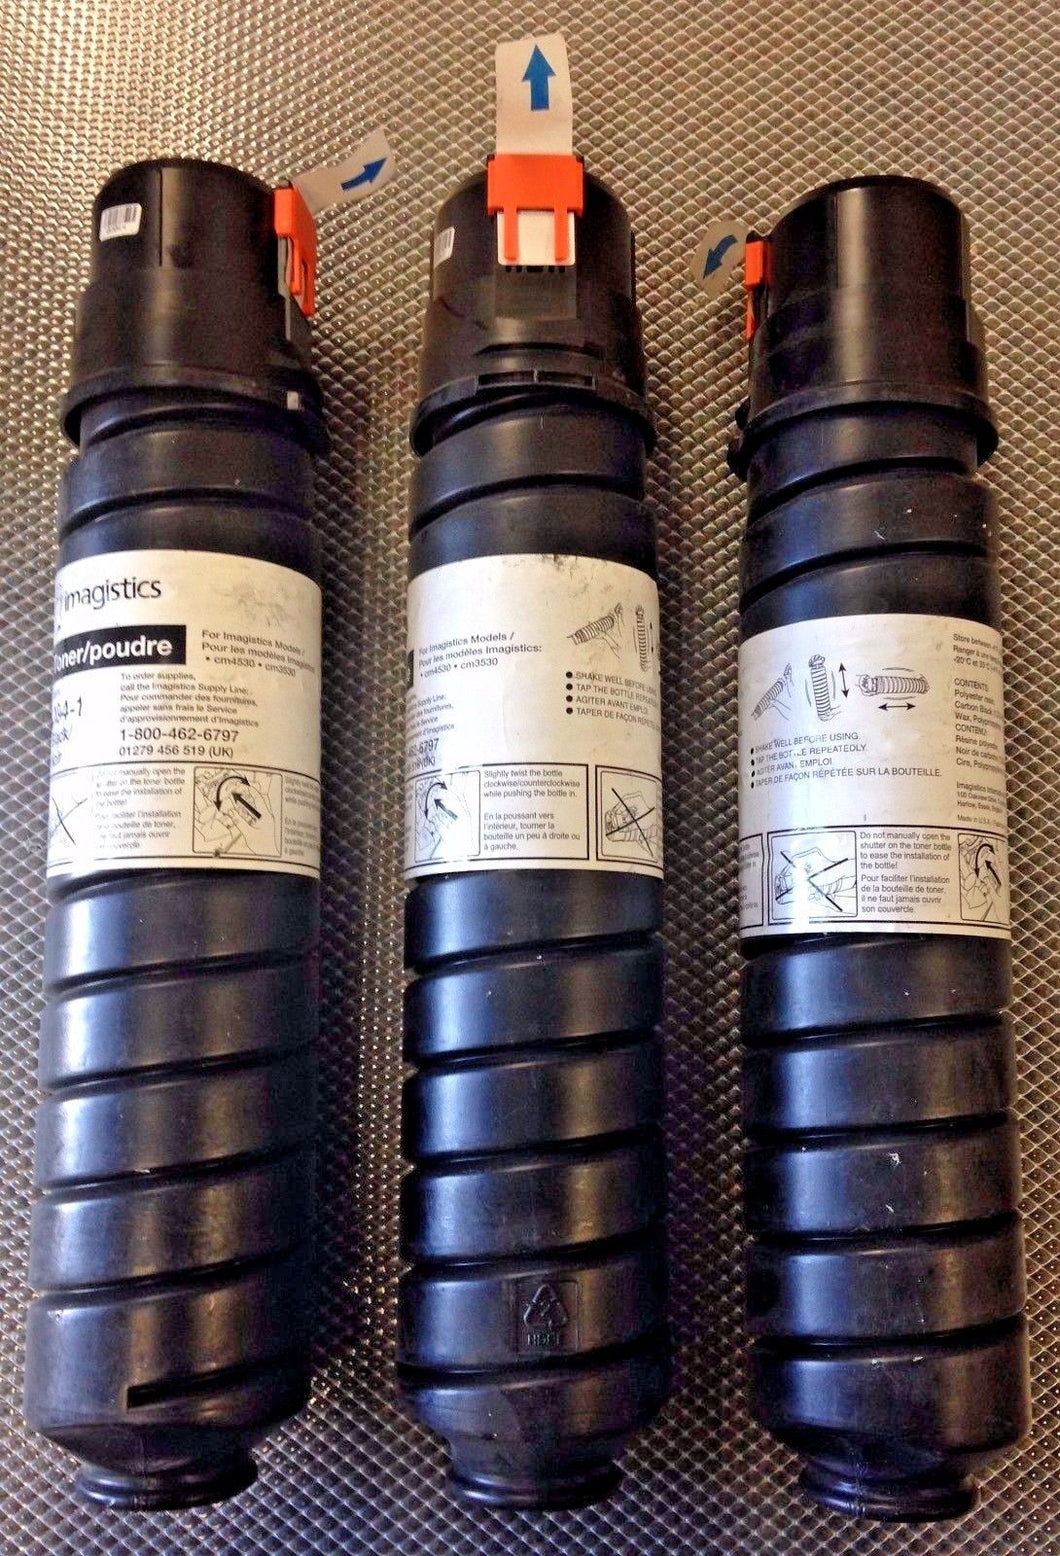 (3) Oce / Imagistics Genuine 494-1 Black Toner Cartridges For CM3530 & CM4530